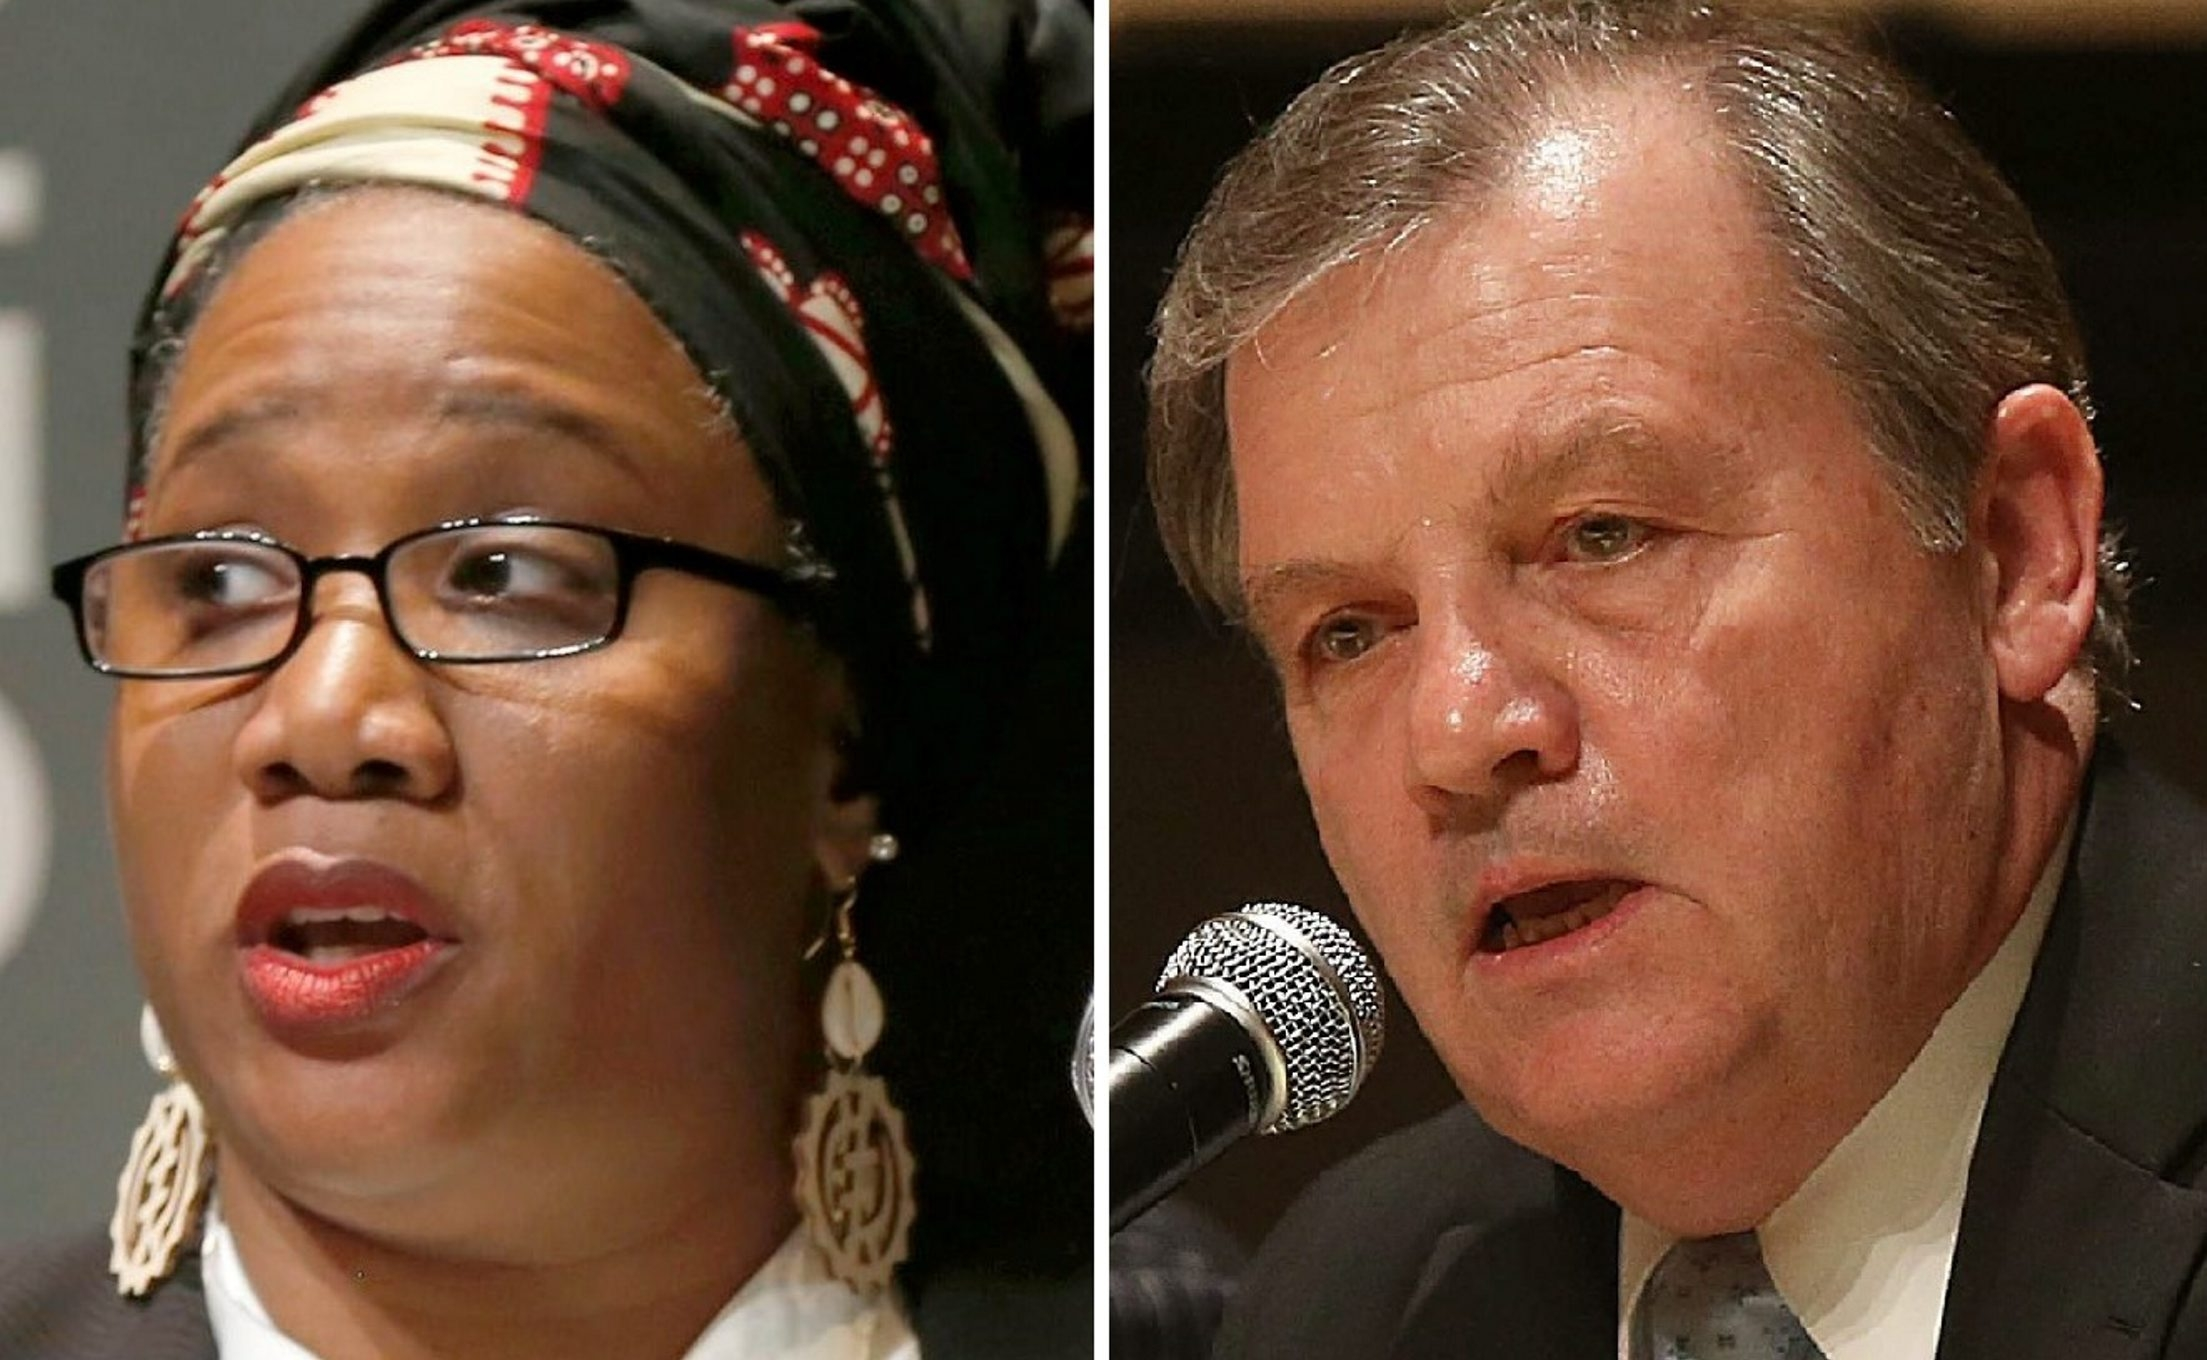 East District candidate Patricia A. Elliott and West District incumbent James Sampson, the School Board president, will mount write-in campaigns after being knocked off ballot for having insufficient signatures.